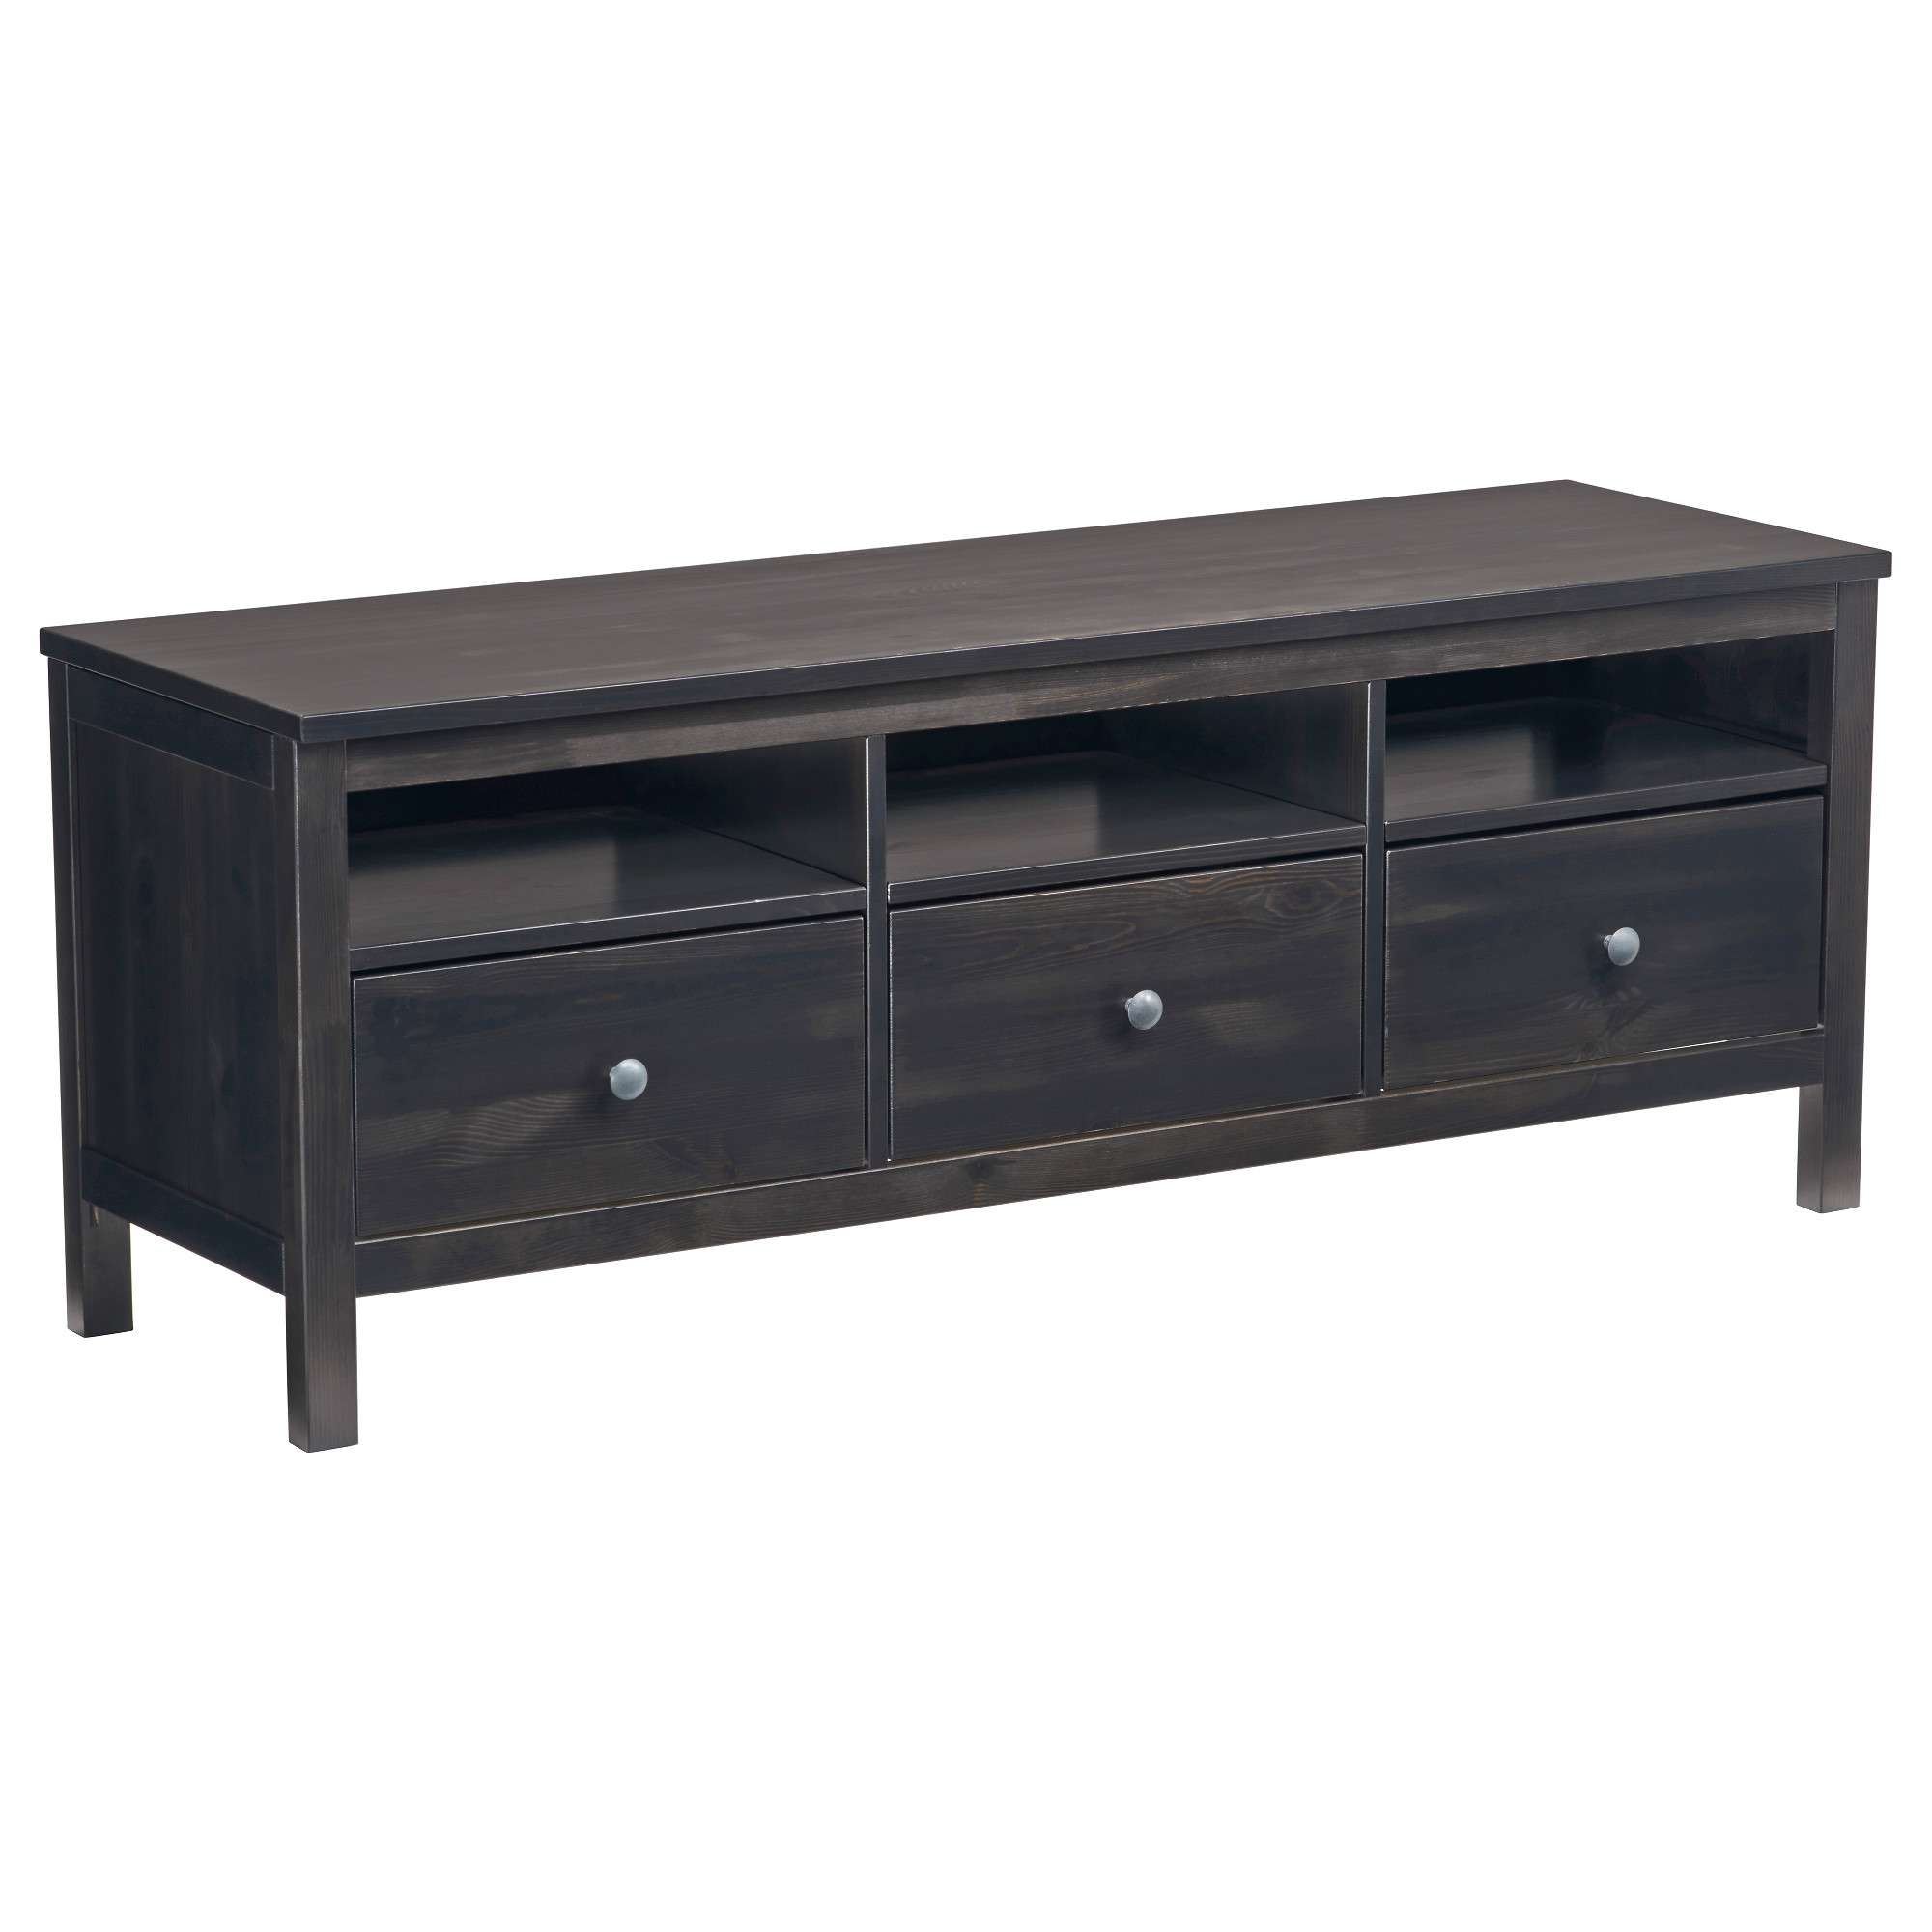 Tv Stands & Entertainment Centers – Ikea Regarding Black Tv Cabinets With Drawers (View 18 of 20)